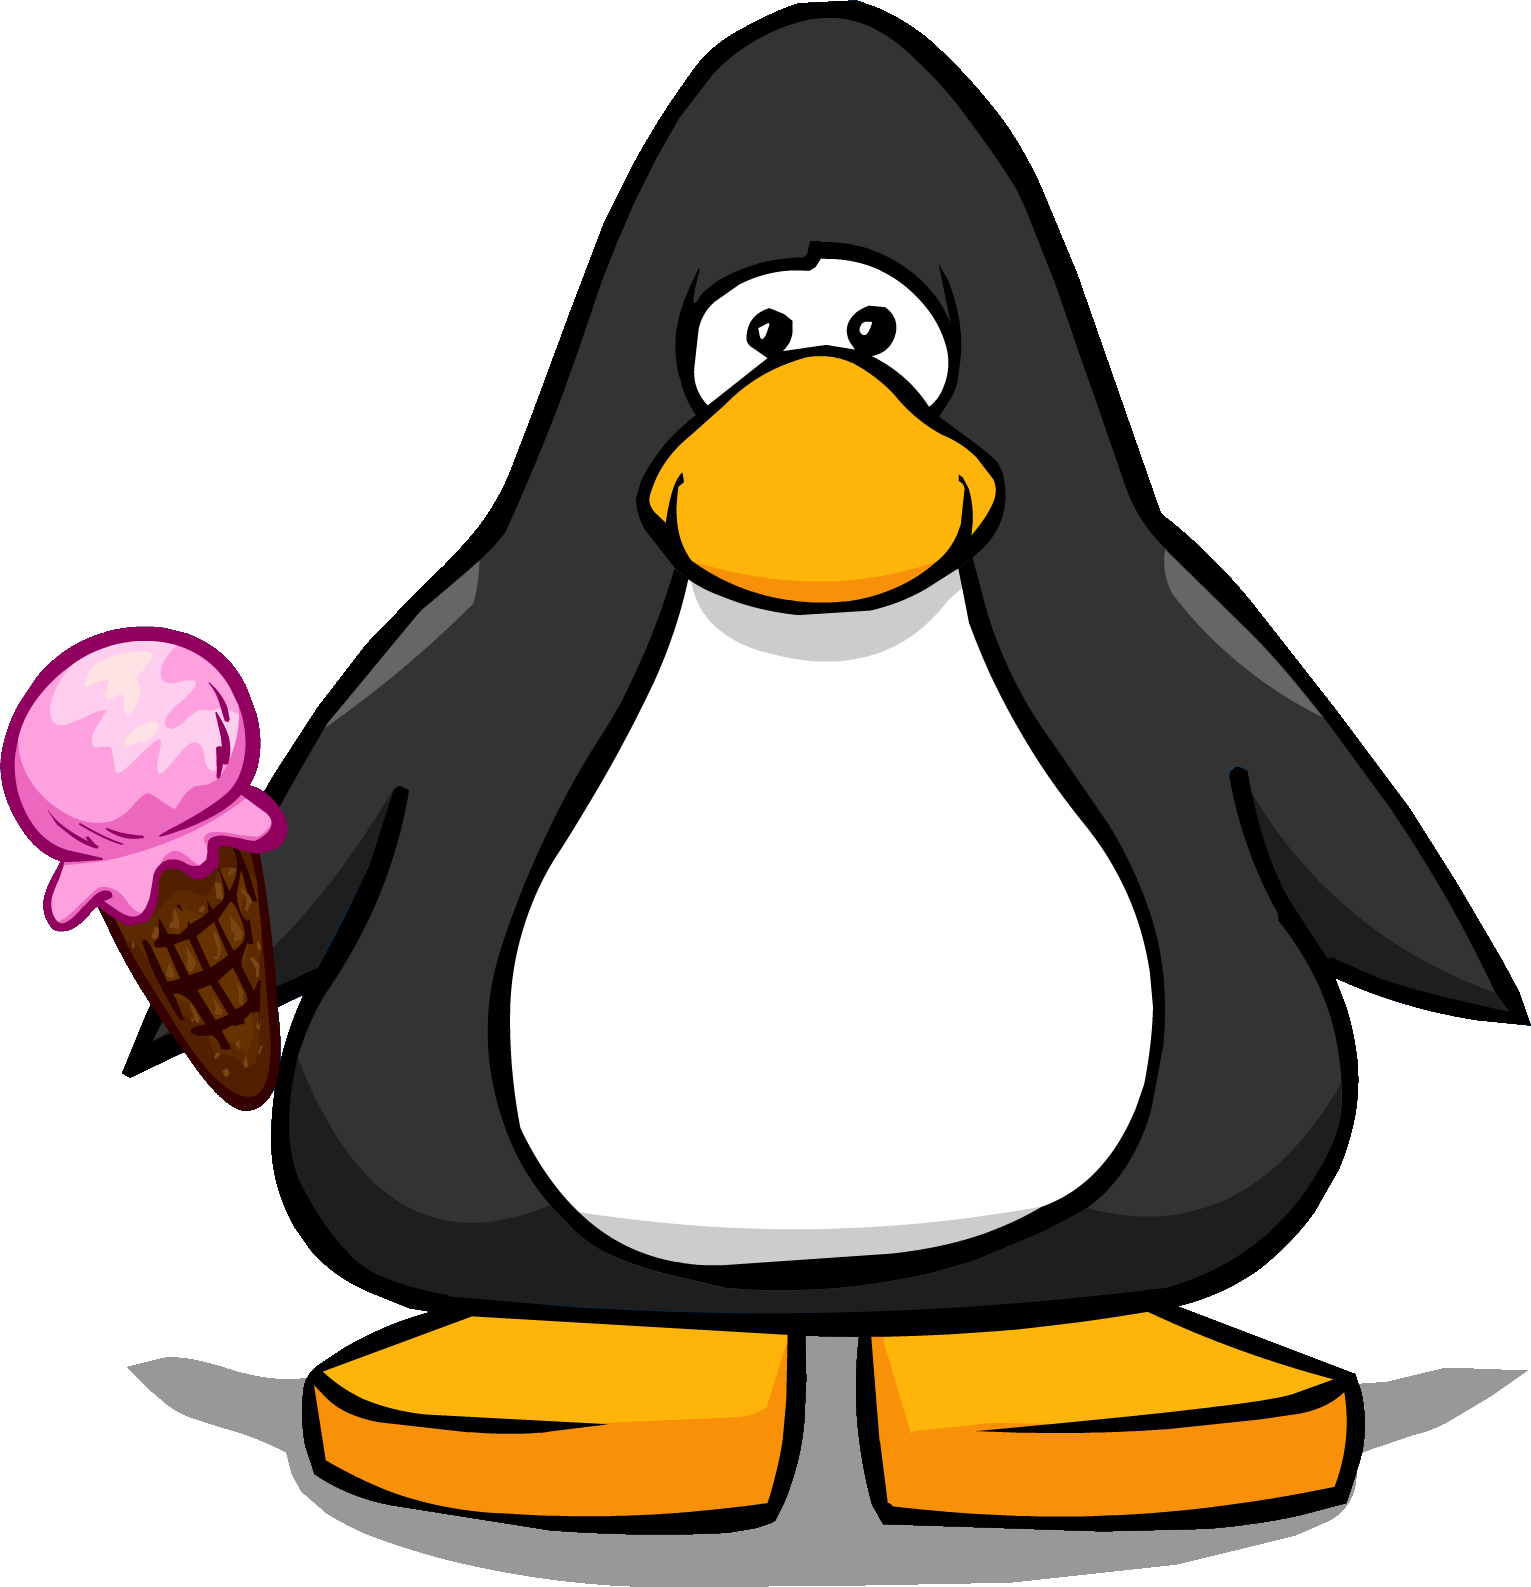 File:Pink Ice Cream from a Player Card.png